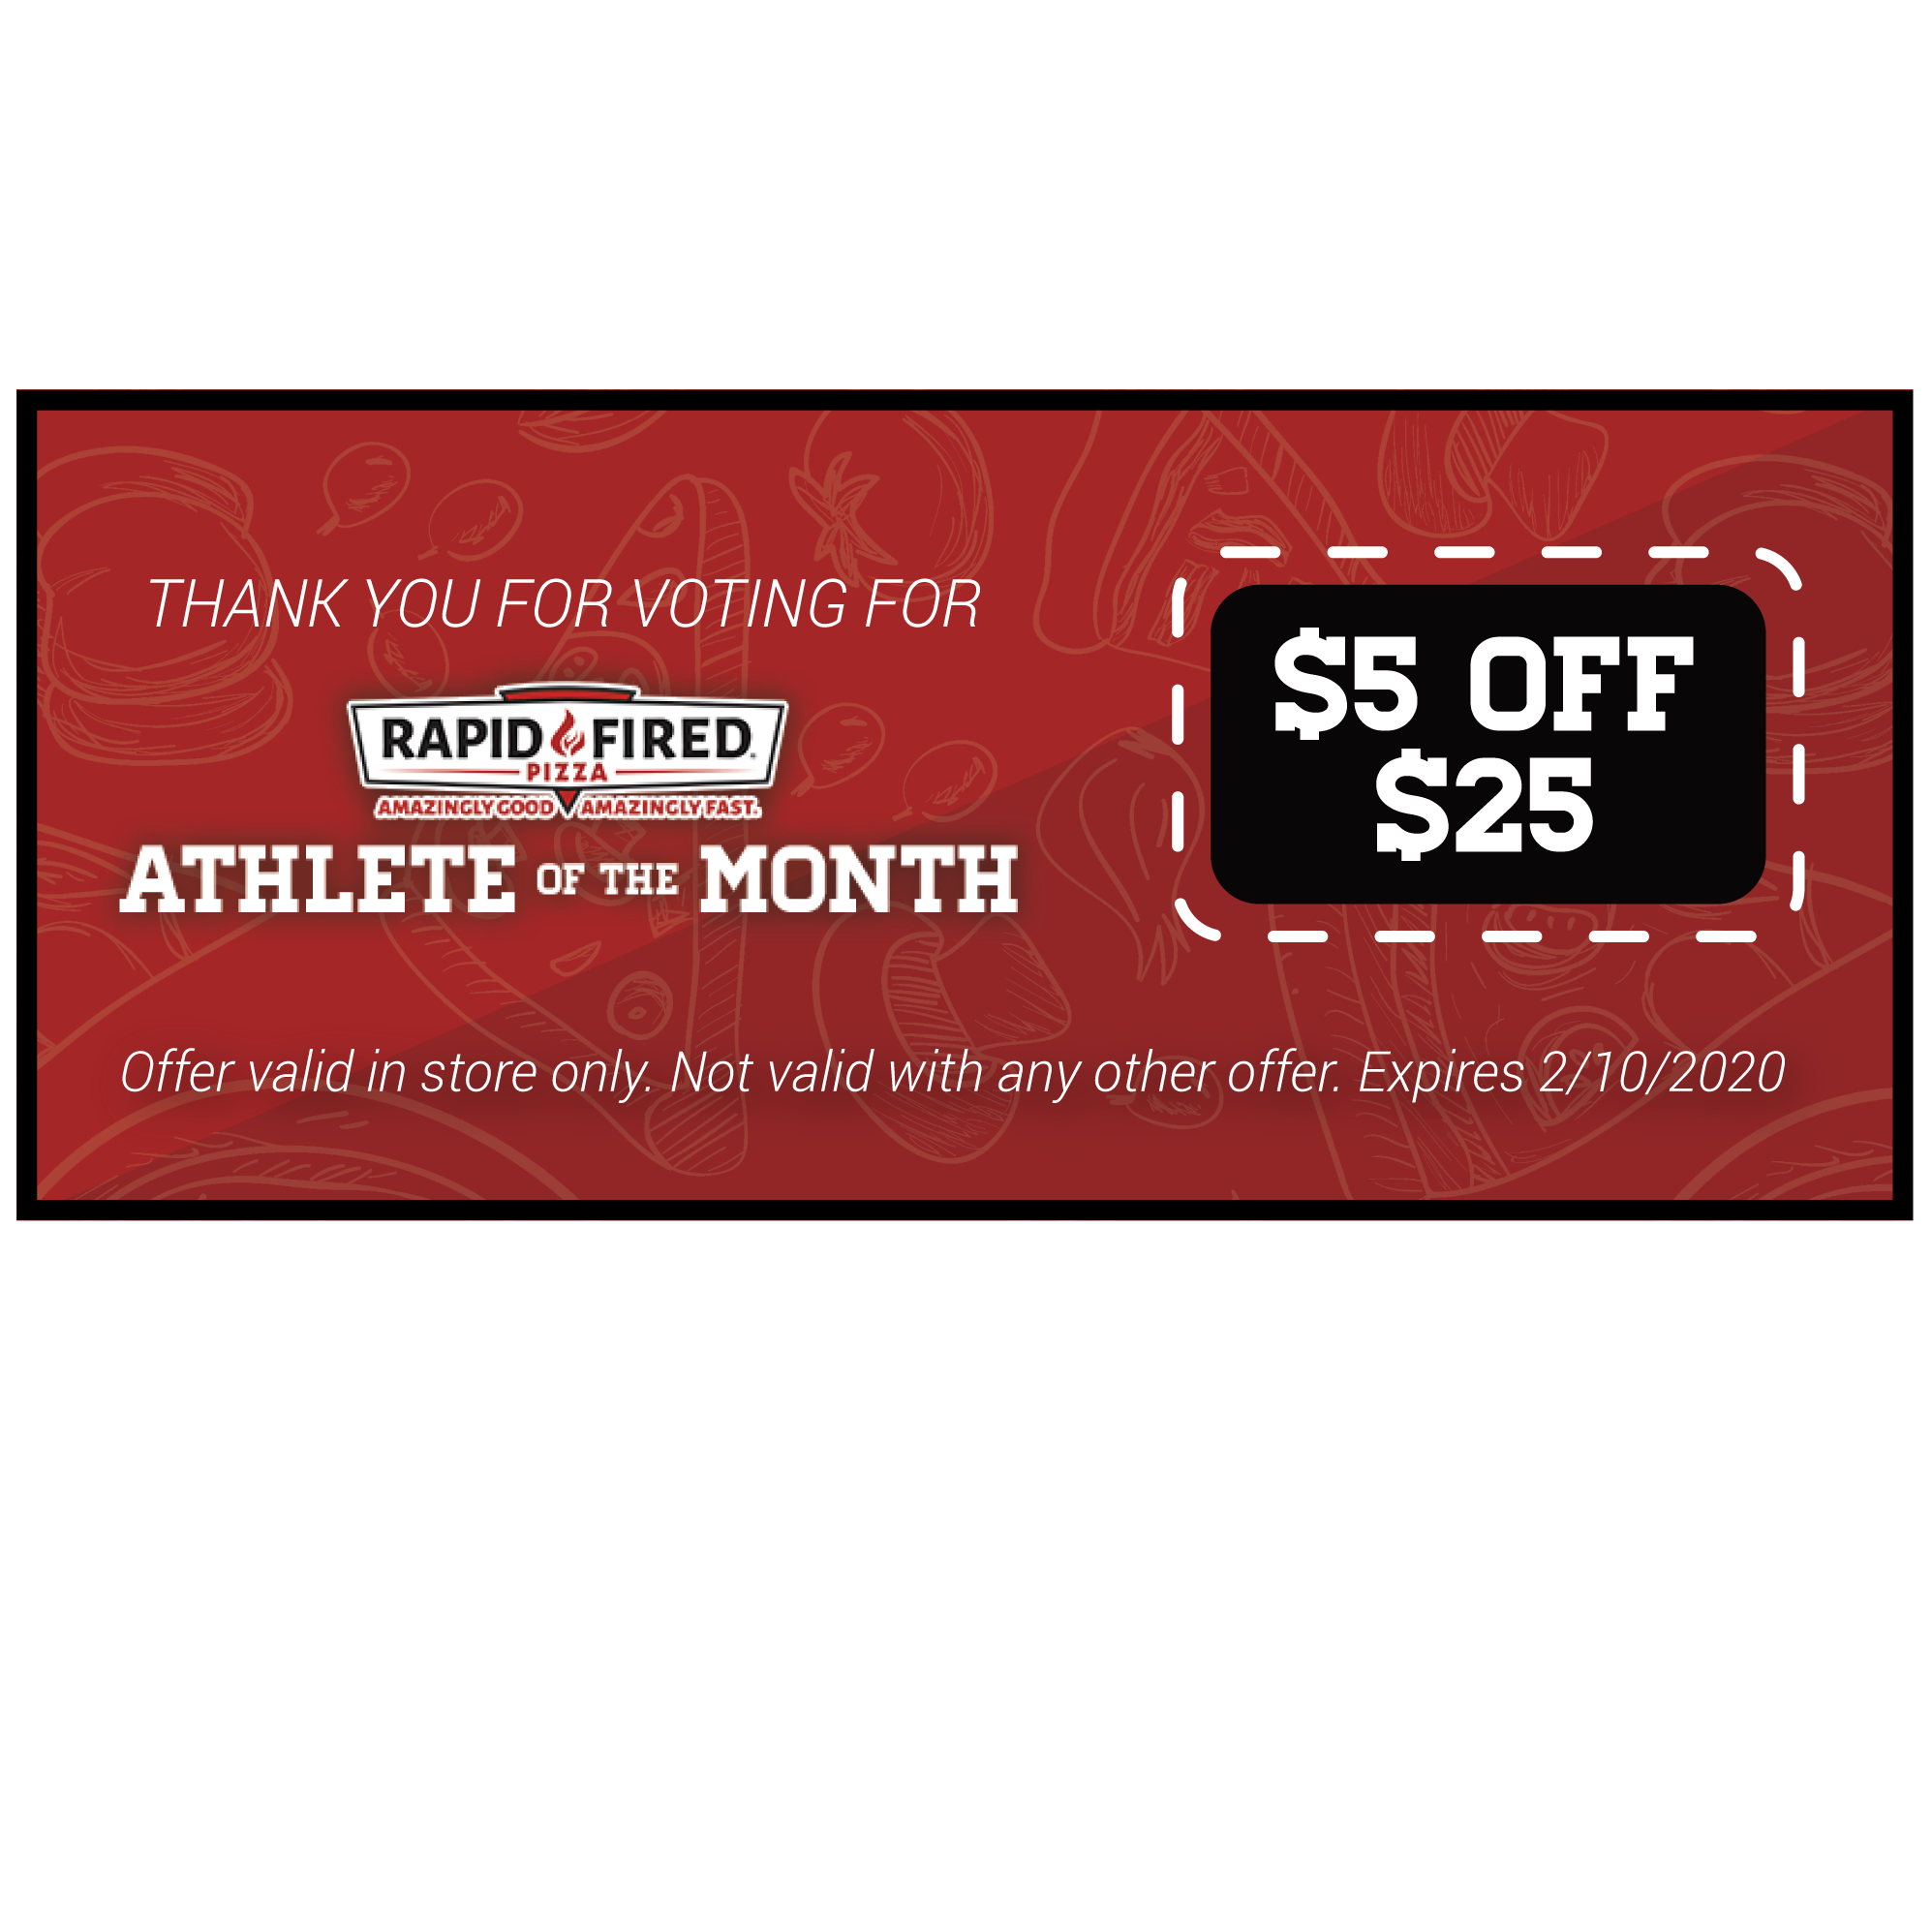 Rapid Fired Pizza Athlete of the Month – Thank You Page